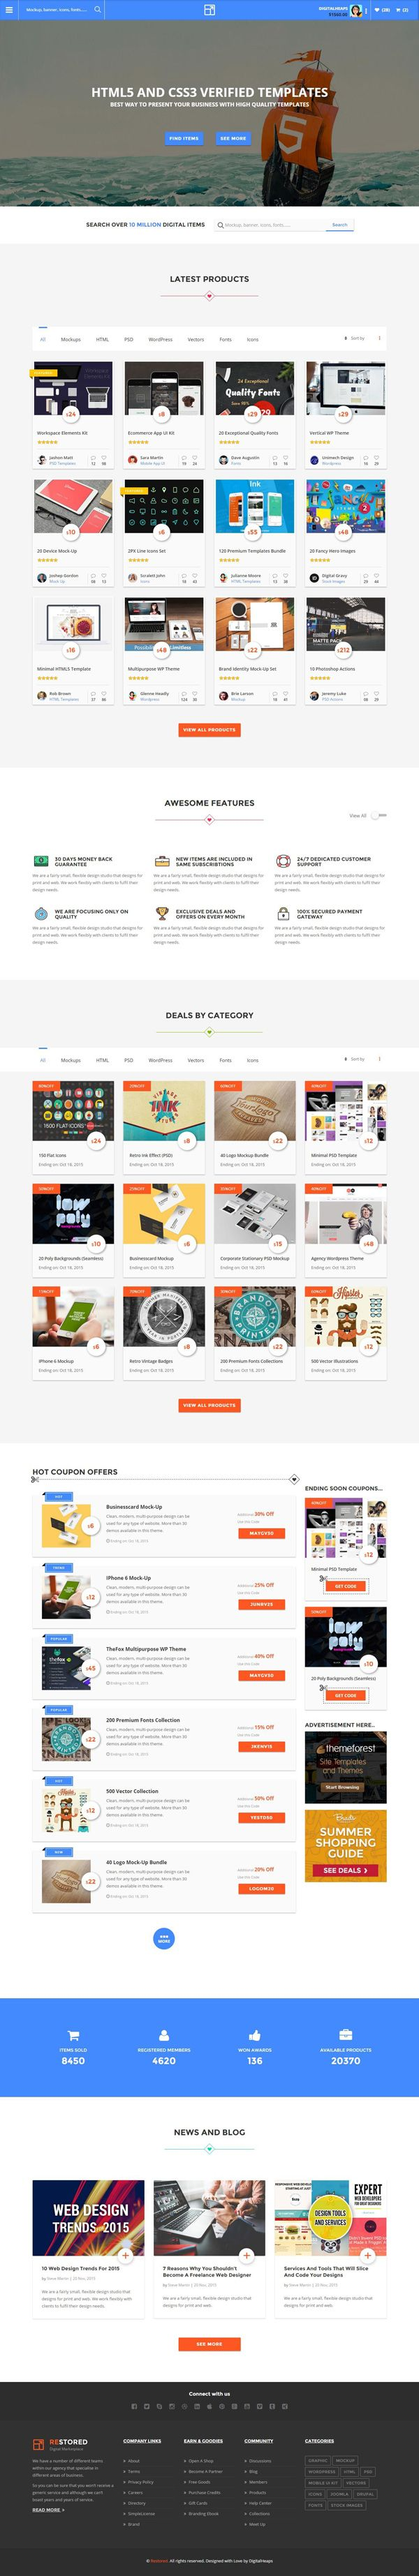 195 besten Downloads - templates Bilder auf Pinterest | Dashboards ...